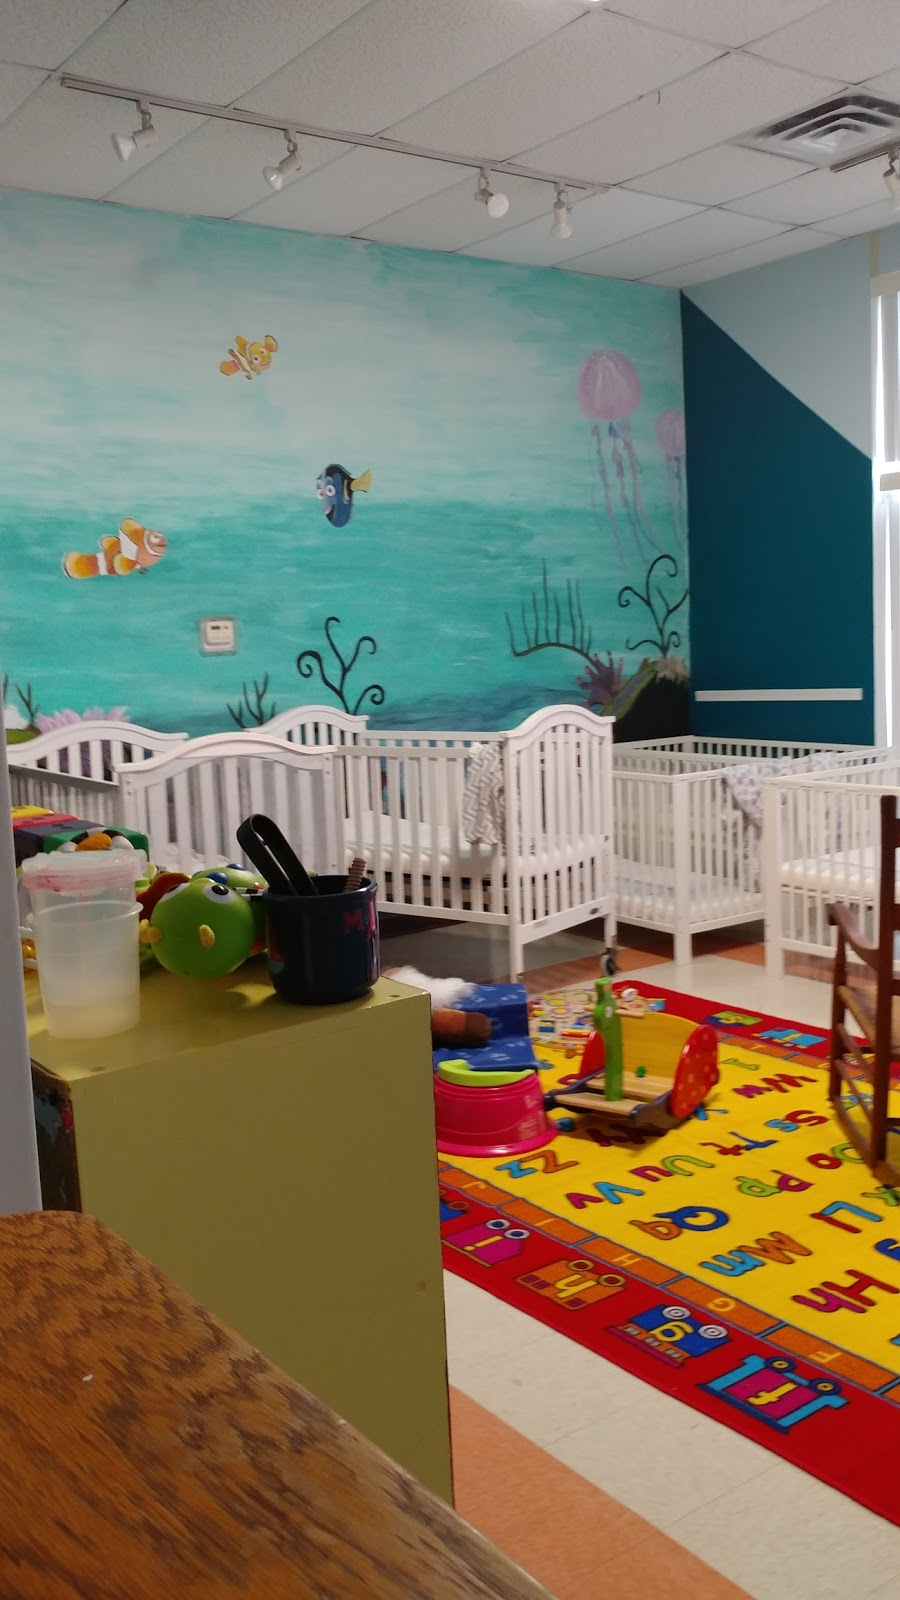 The Play Pin Daycare Corp - point of interest  | Photo 7 of 10 | Address: 4753 W Washington Blvd, Chicago, IL 60644, USA | Phone: (773) 688-5445